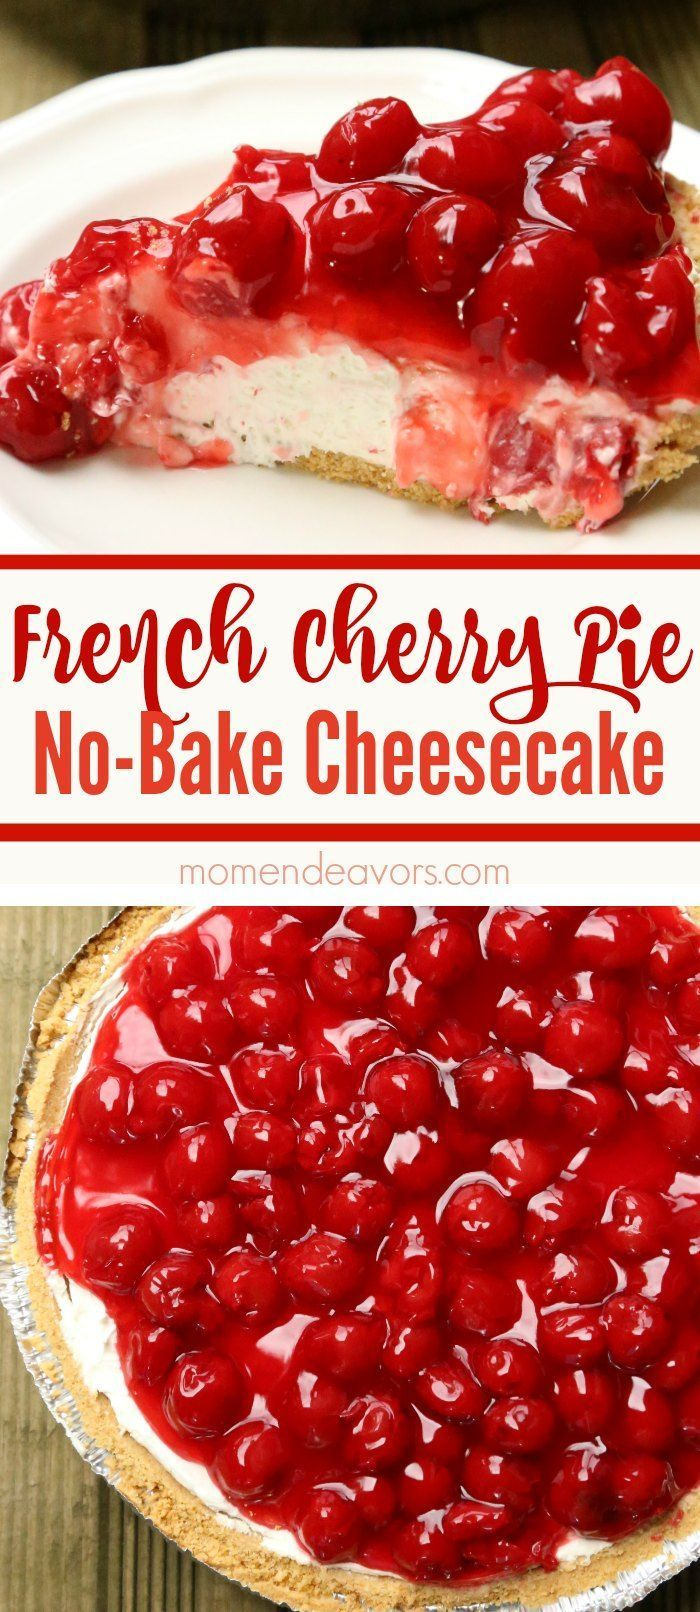 French Cherry Pie No-Bake Cheesecake - A delicious easy-to-make dessert!